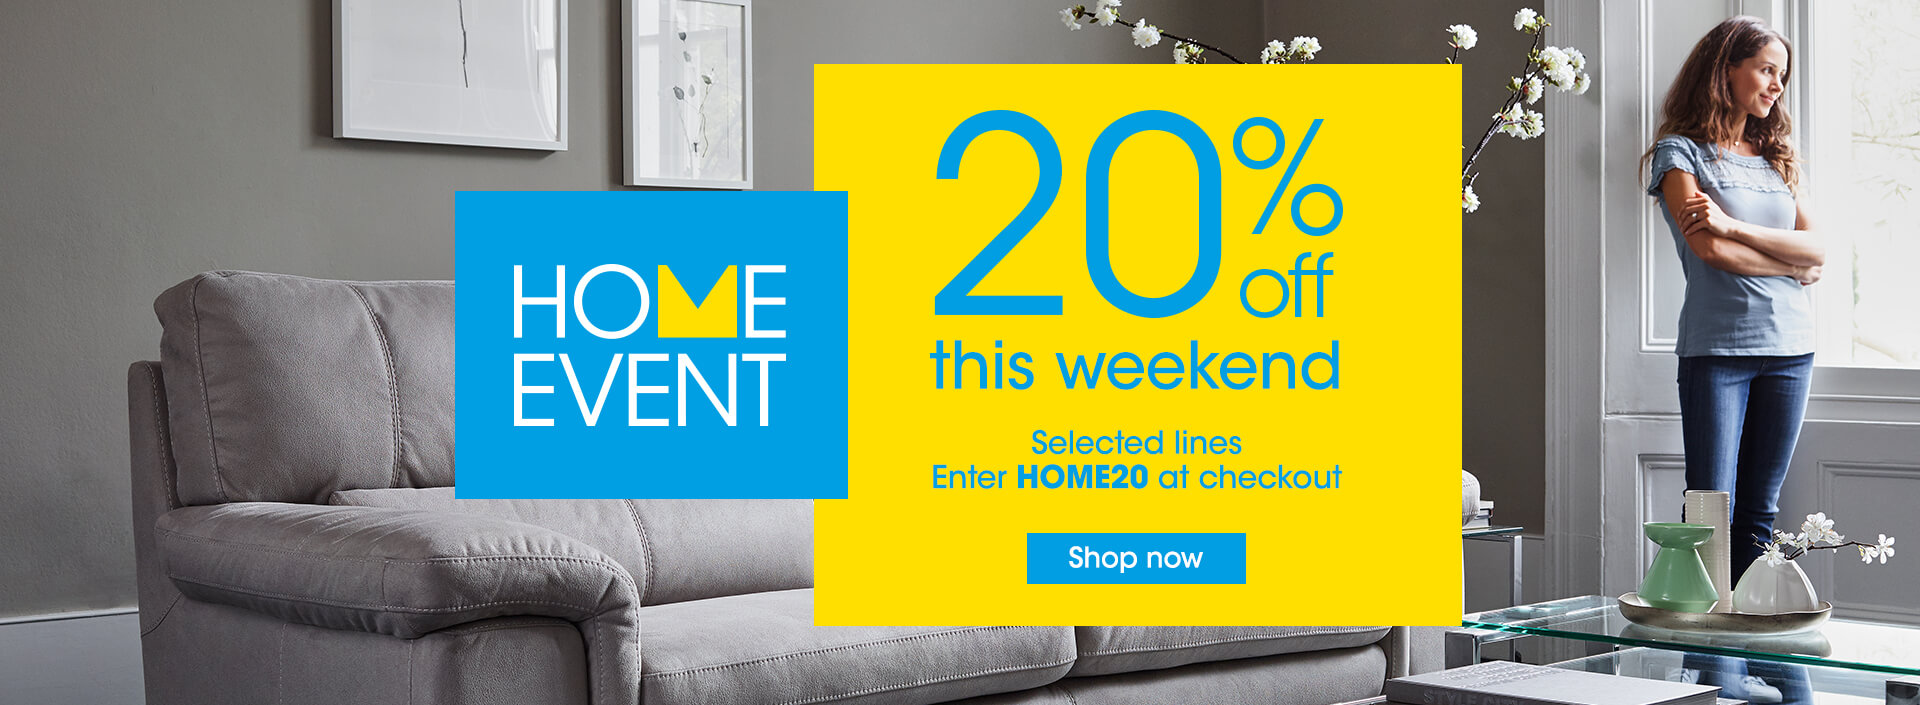 Furniture Village Discount Code the uk's largest independent furniture retailer - furniture village